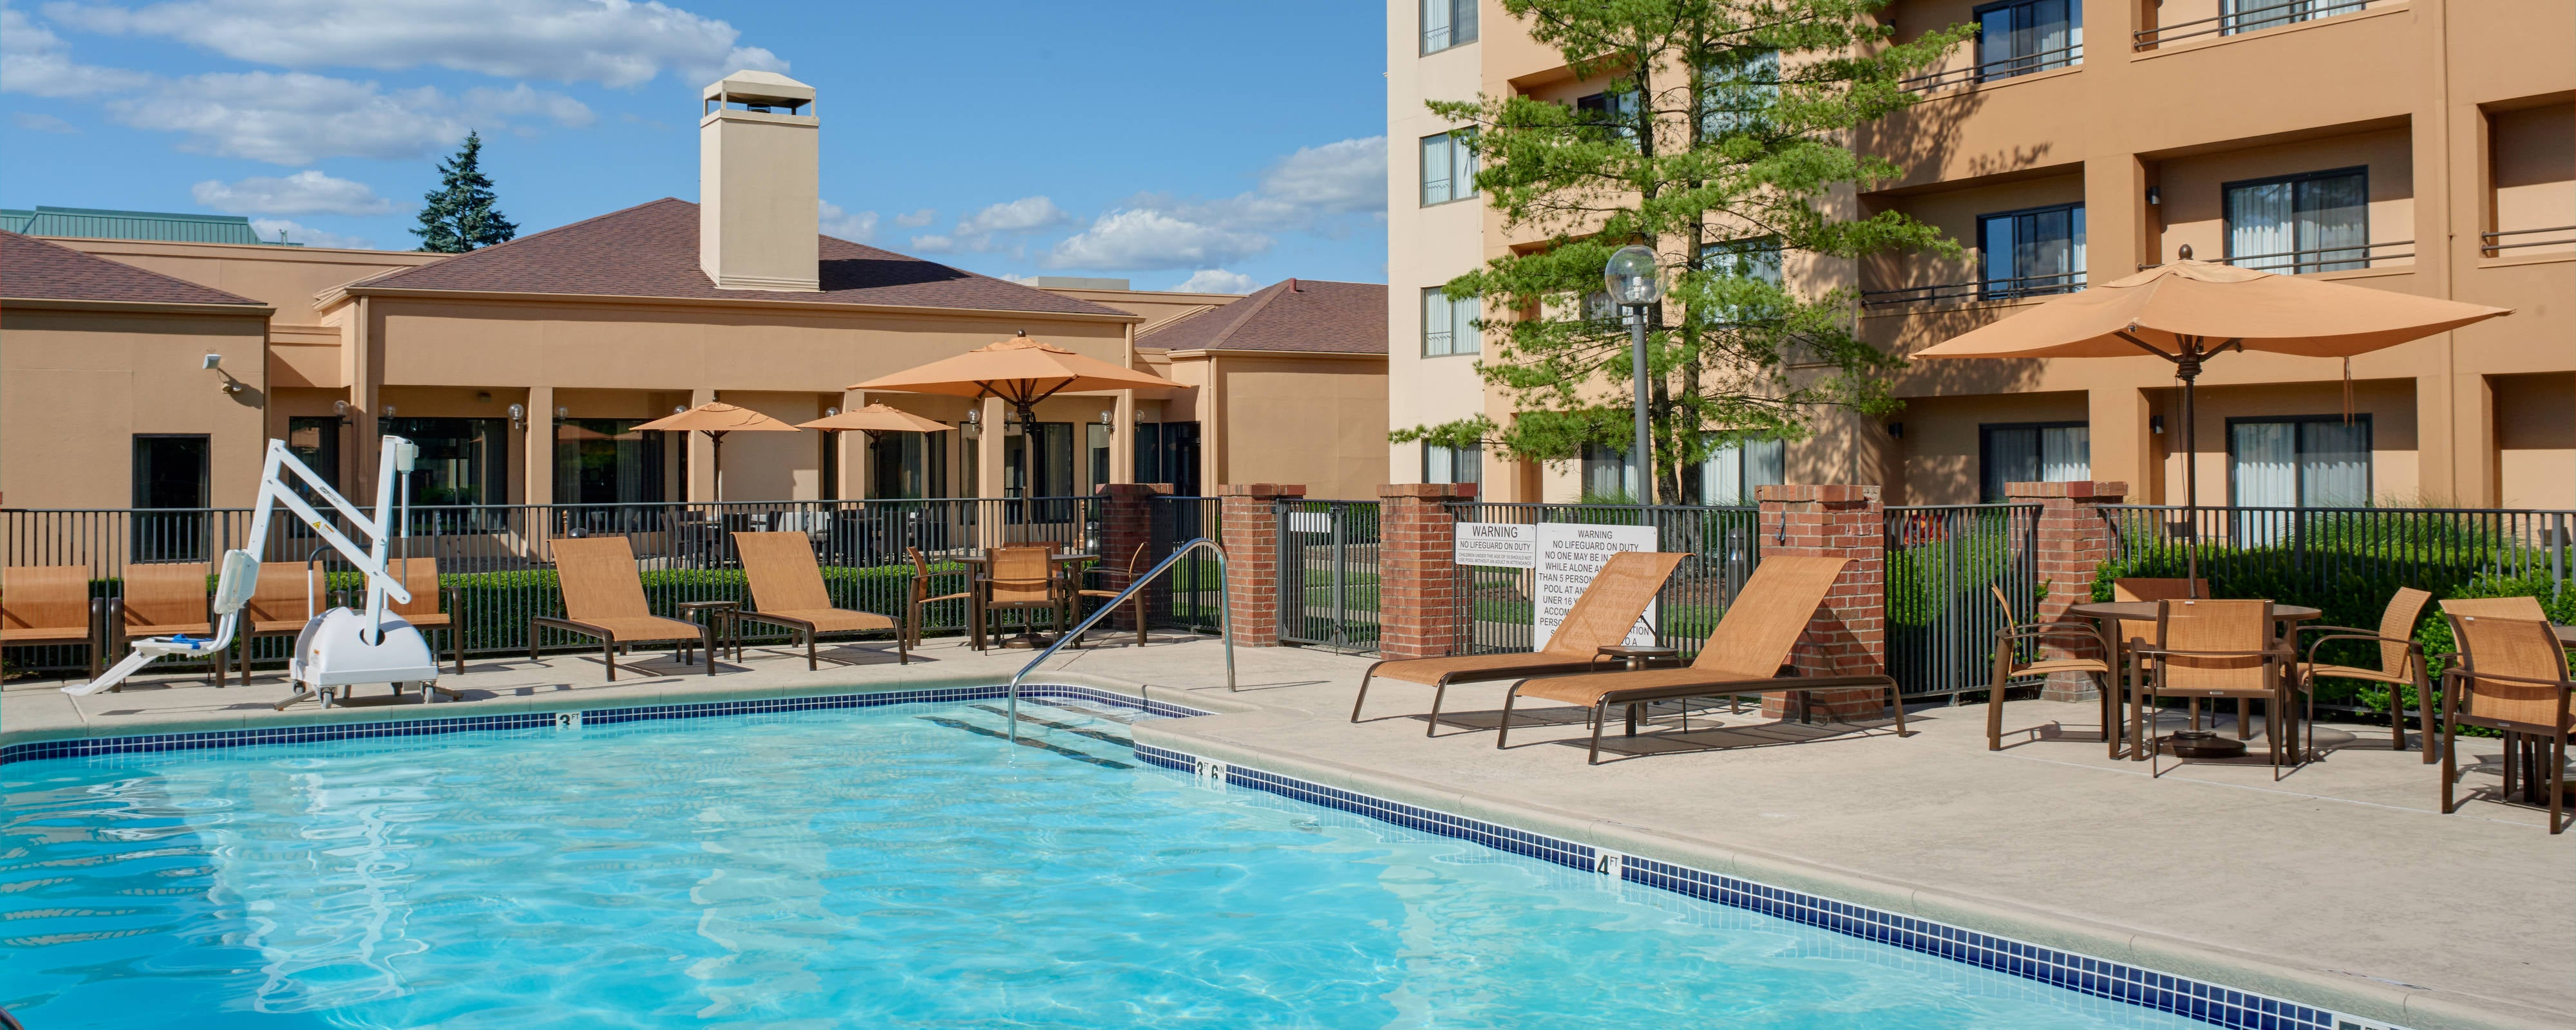 Hotels with swimming pools in louisville ky courtyard - University of louisville swimming pool ...